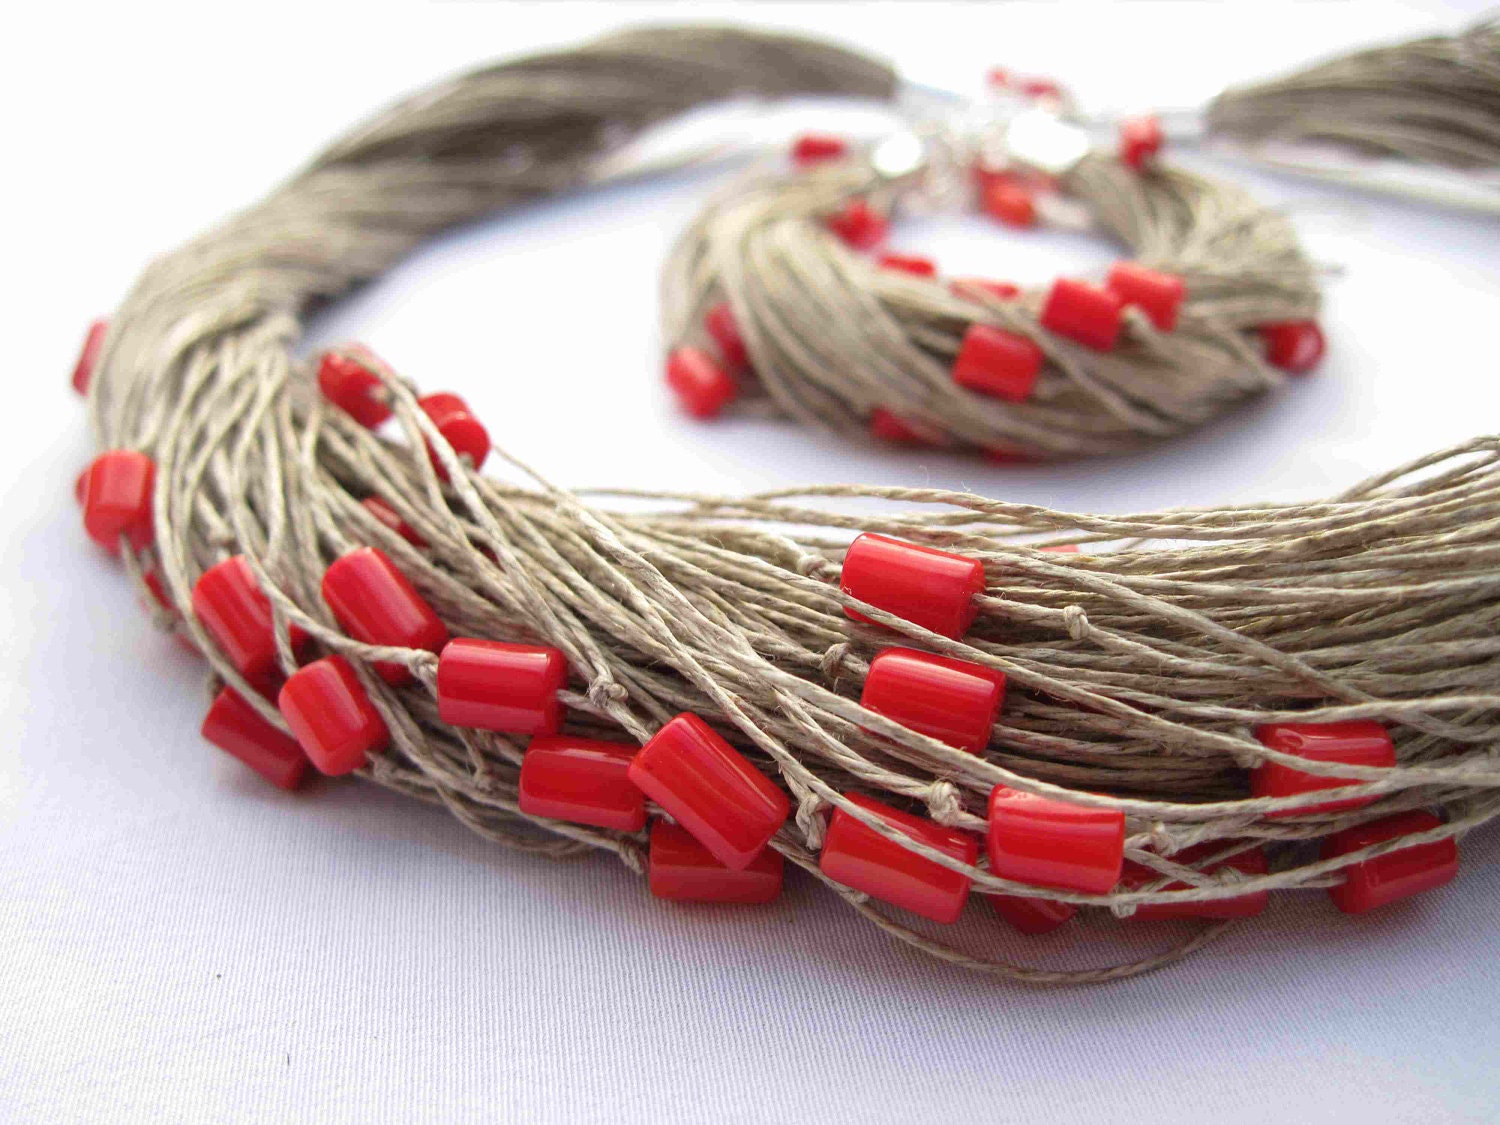 Red Coral Linen Necklace Bracelet Linen Jewelry Multi Strand Natural Fiber Summer Fashion - DreamsFactory